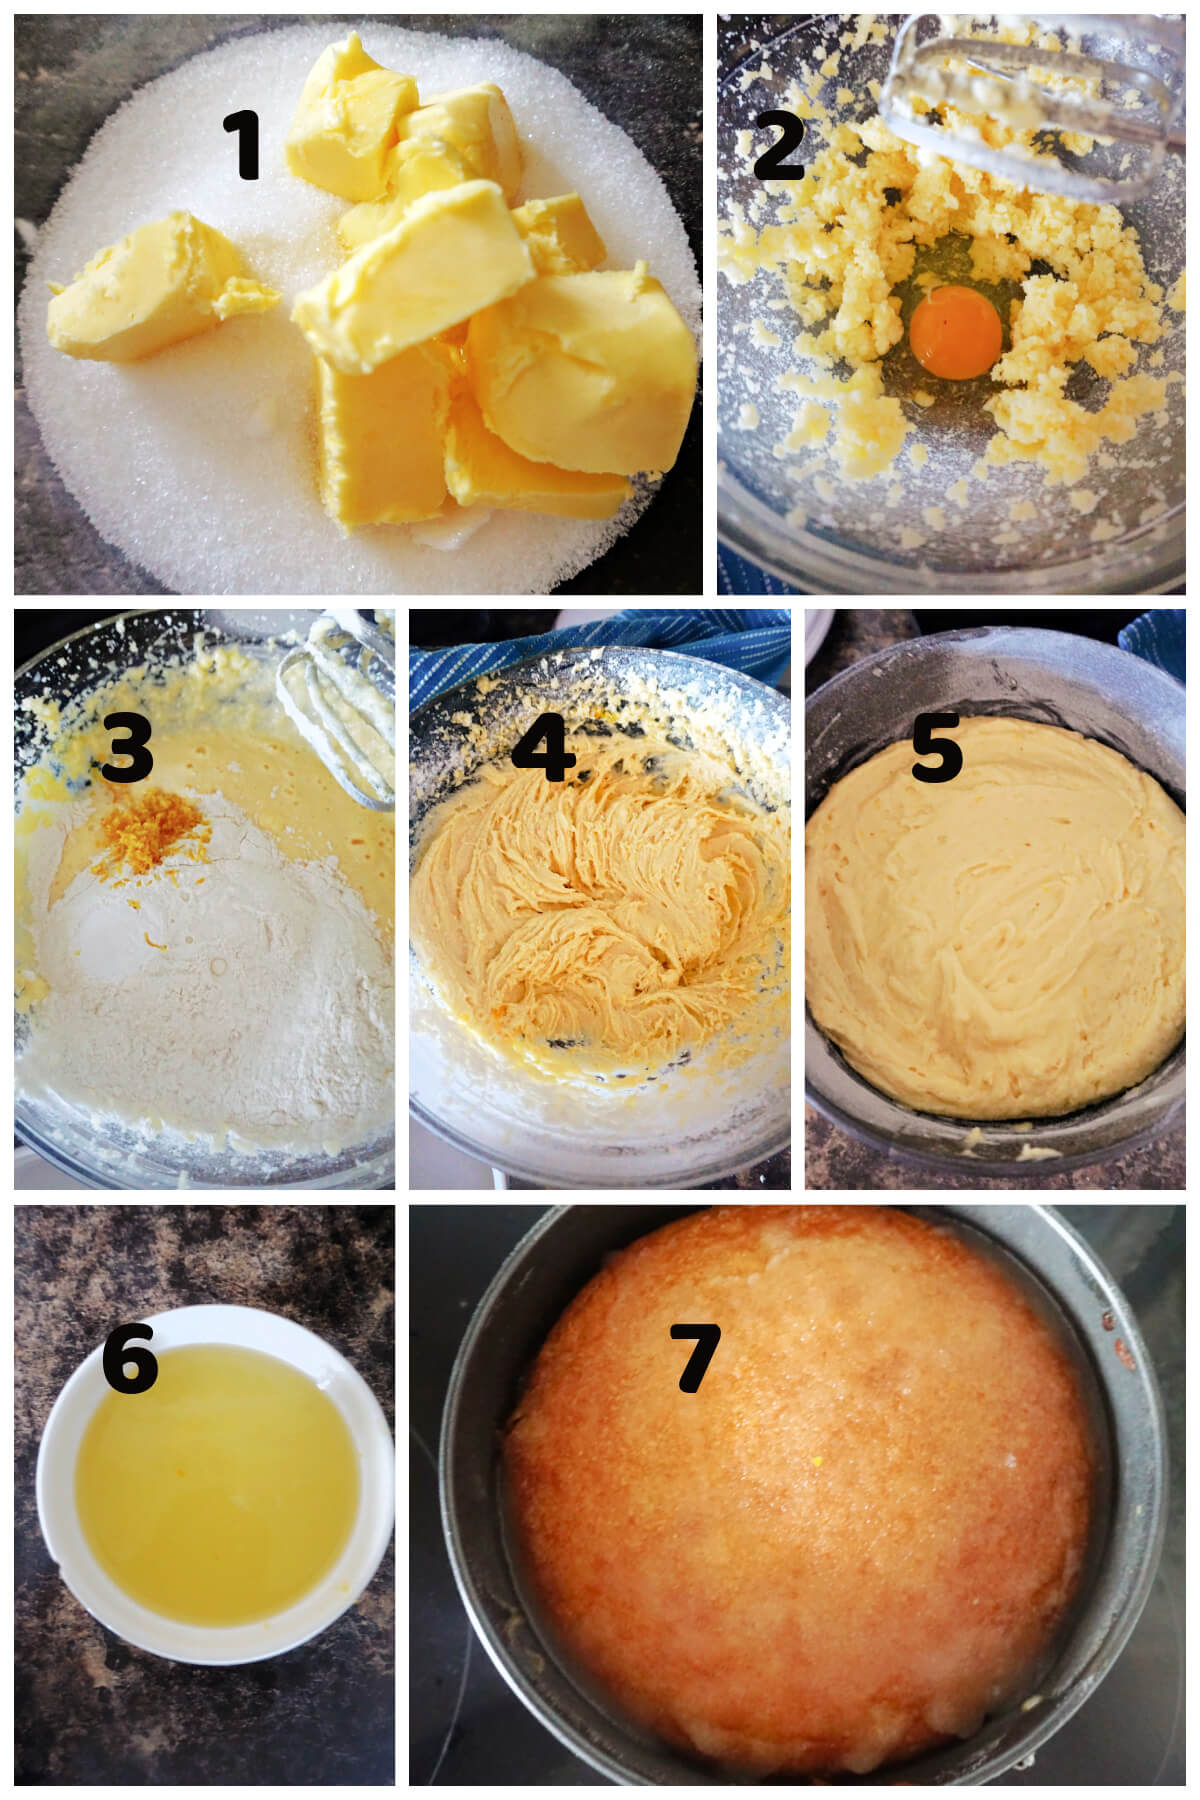 Collage of 7 photos to show how to make lemon drizzle cake